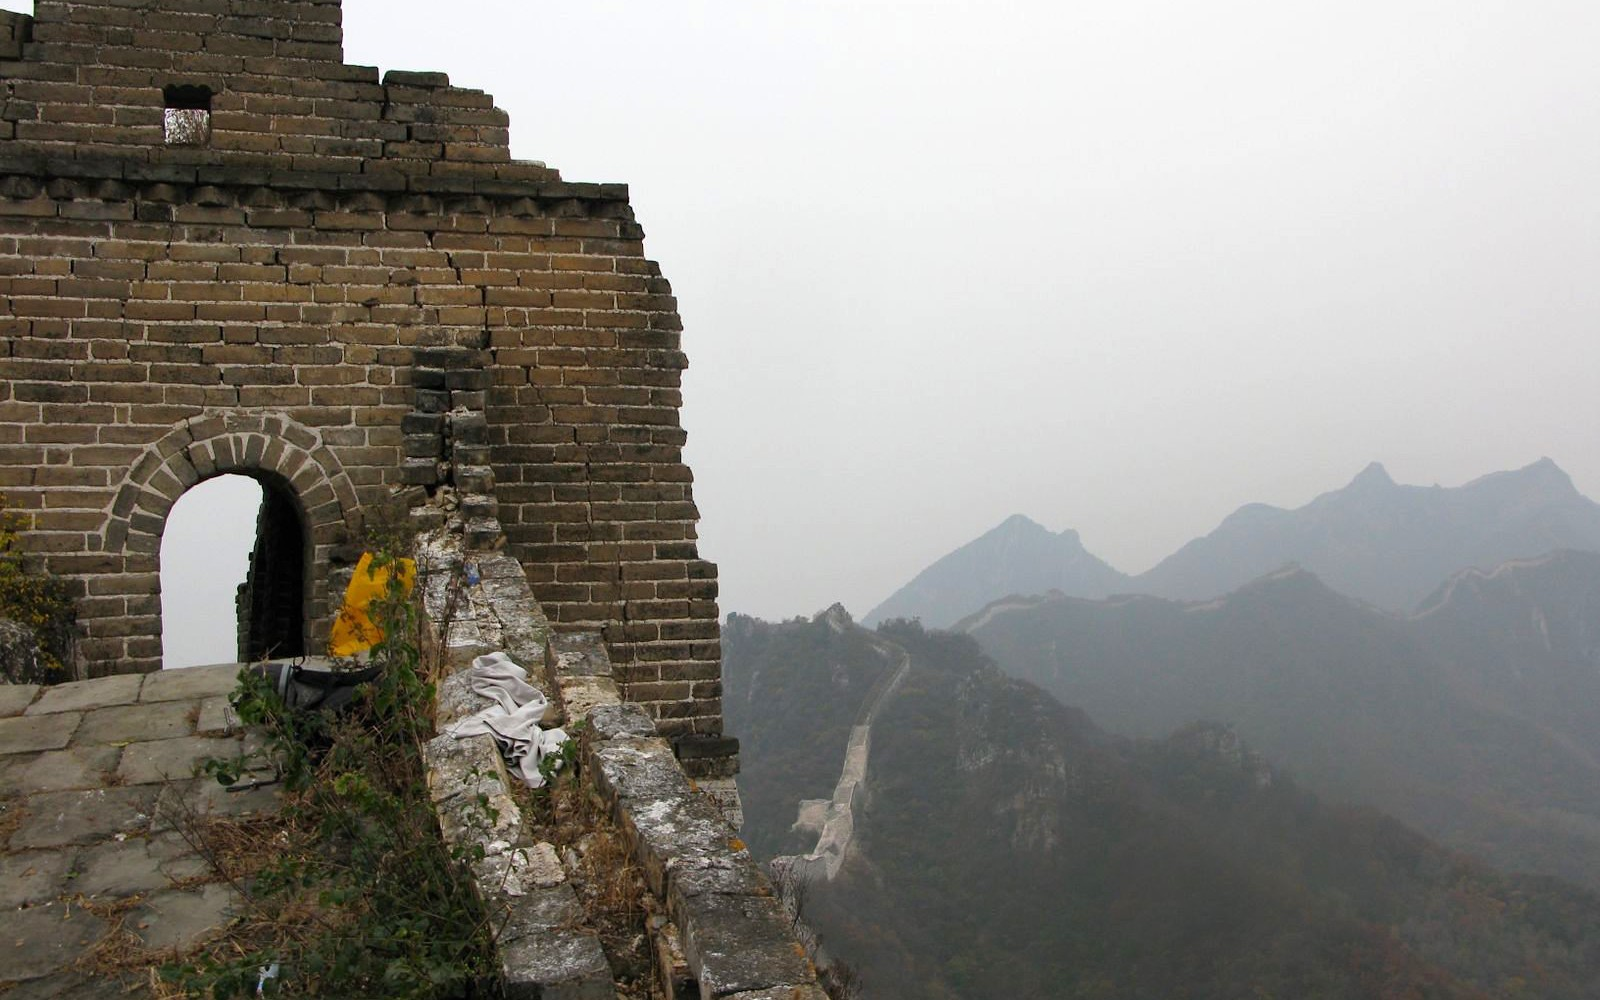 Camping out on the Great Wall of China (Not so Legally)